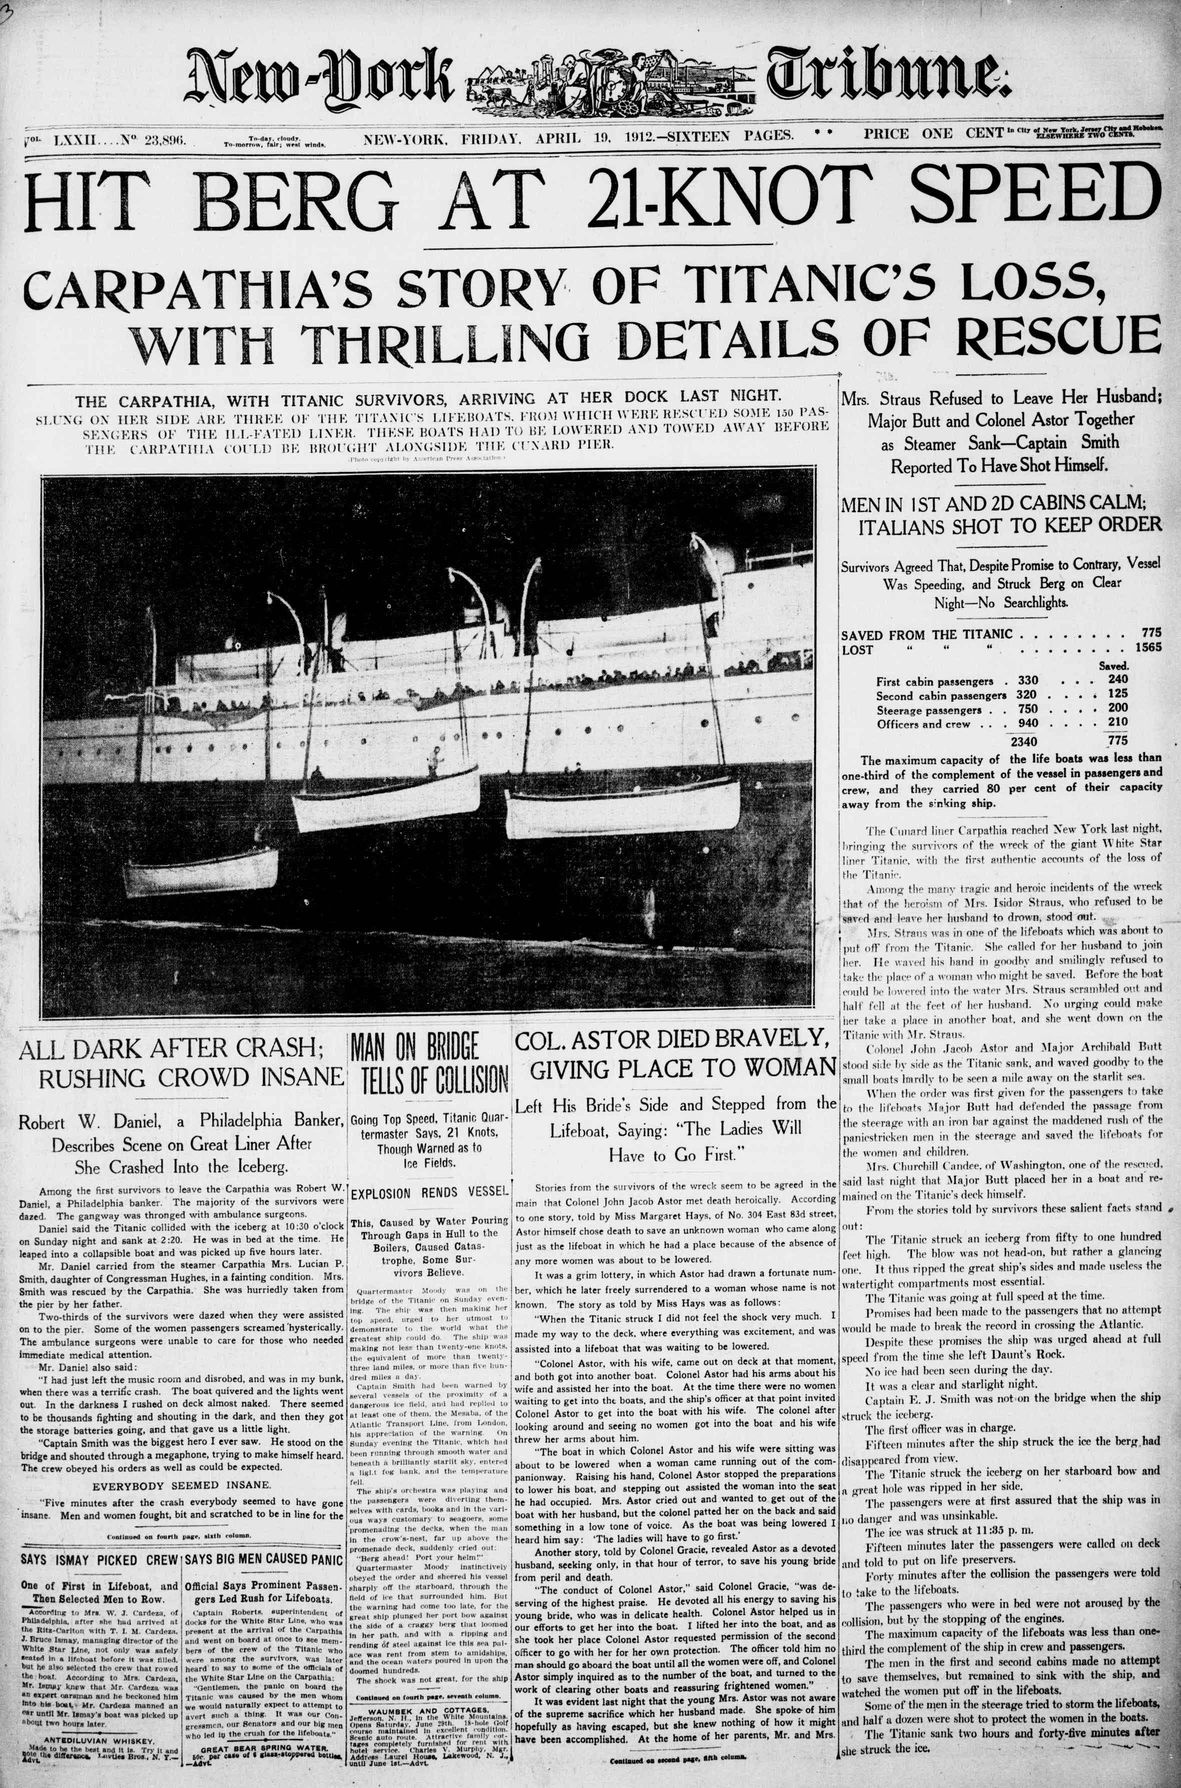 Titanic Newspaper Front Page 1912-04-19 New-York Tribune, April 19, 1912, Page 1